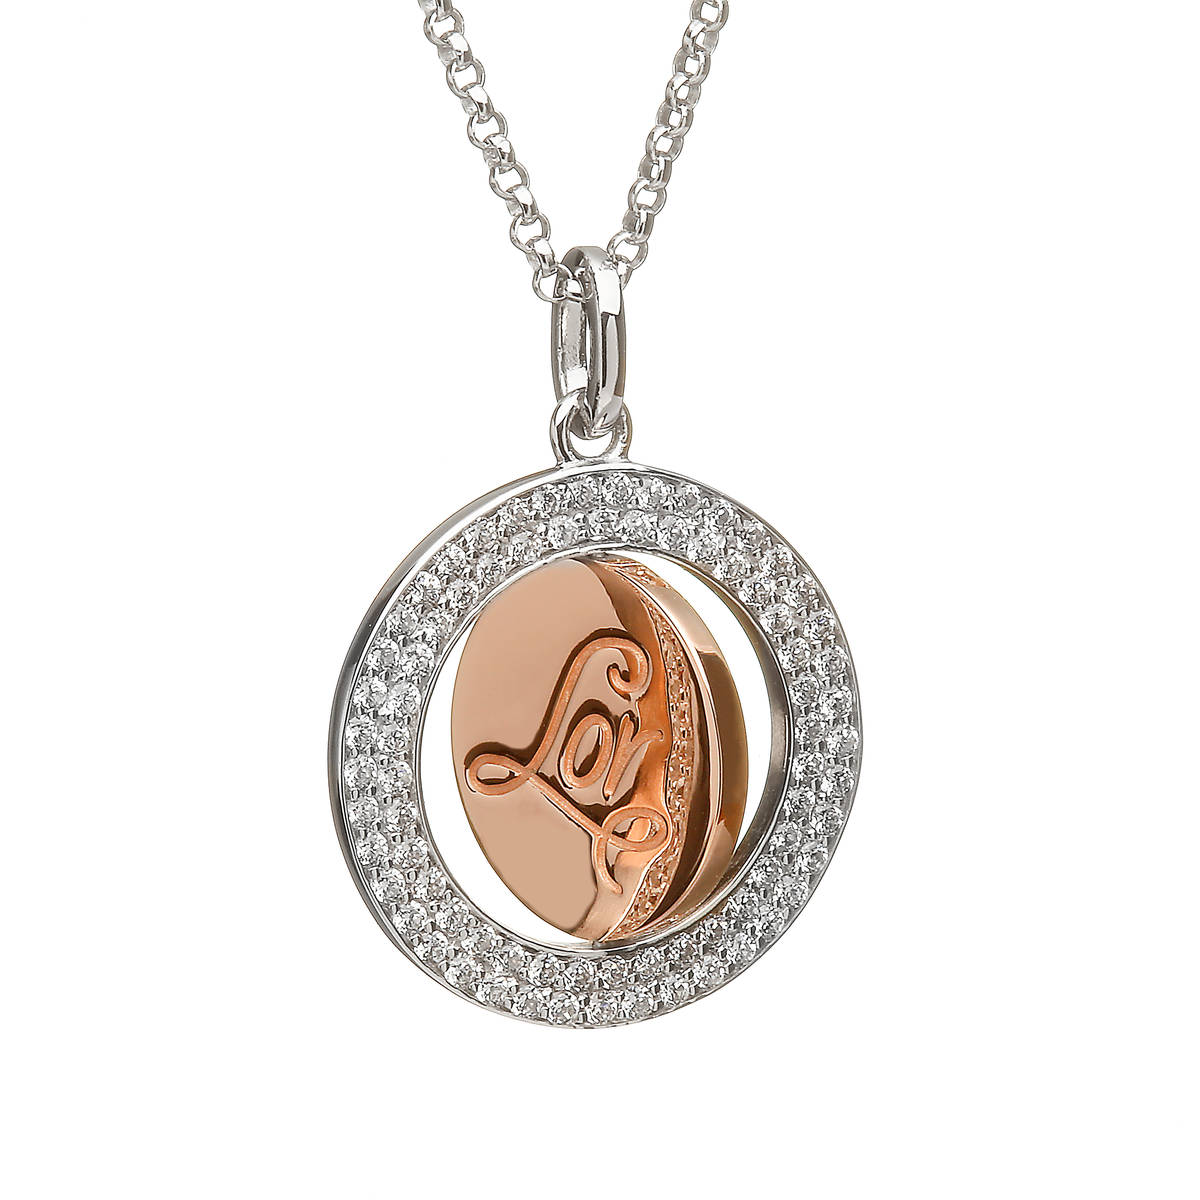 House of Lor silver cz round Lor disc pendant rose gold inner disc made from rare Irish gold